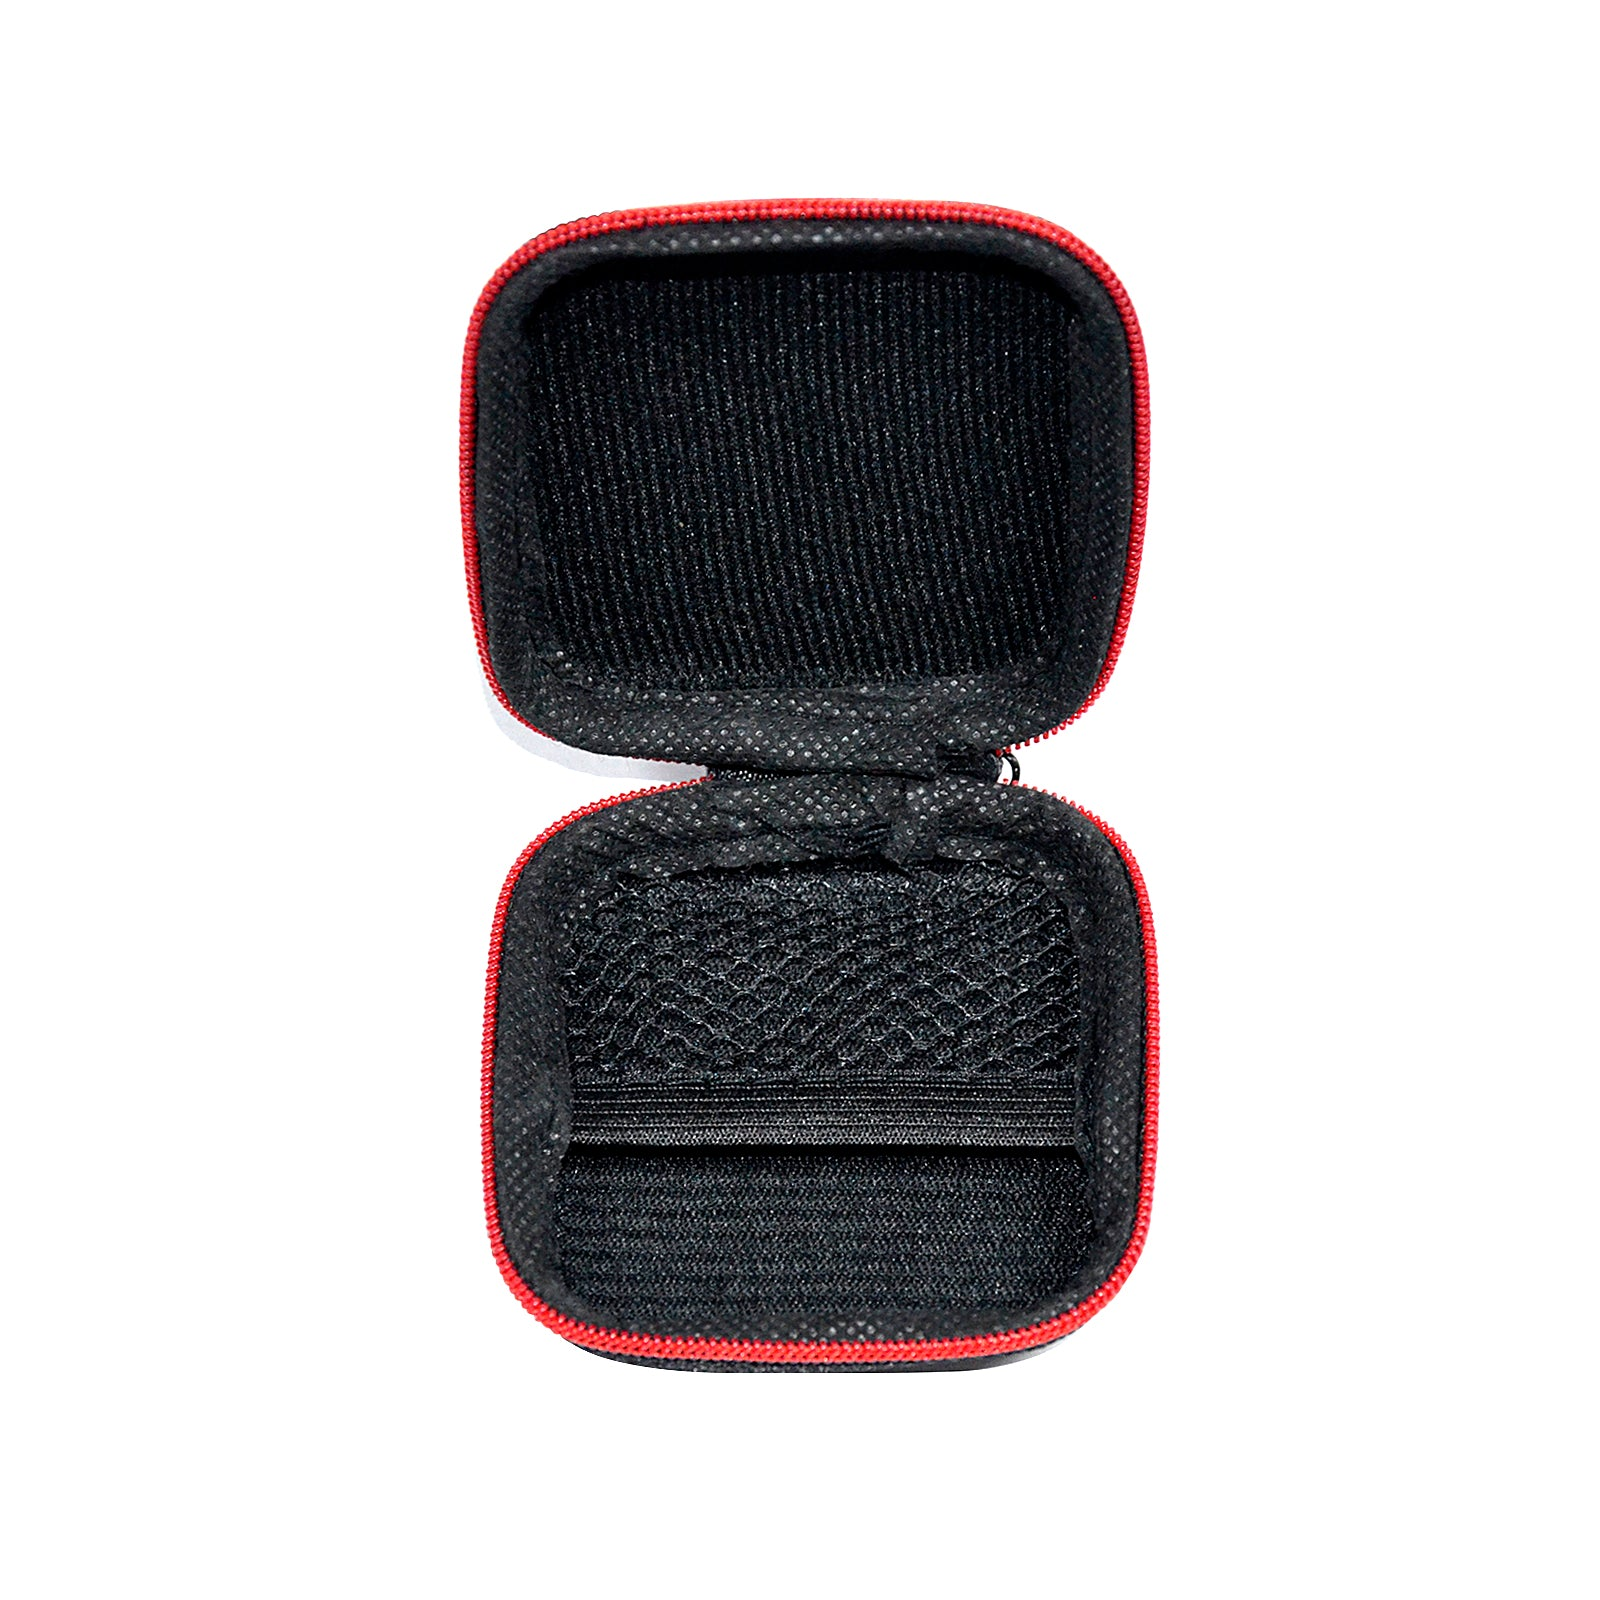 Headphone Protective Carrying Case